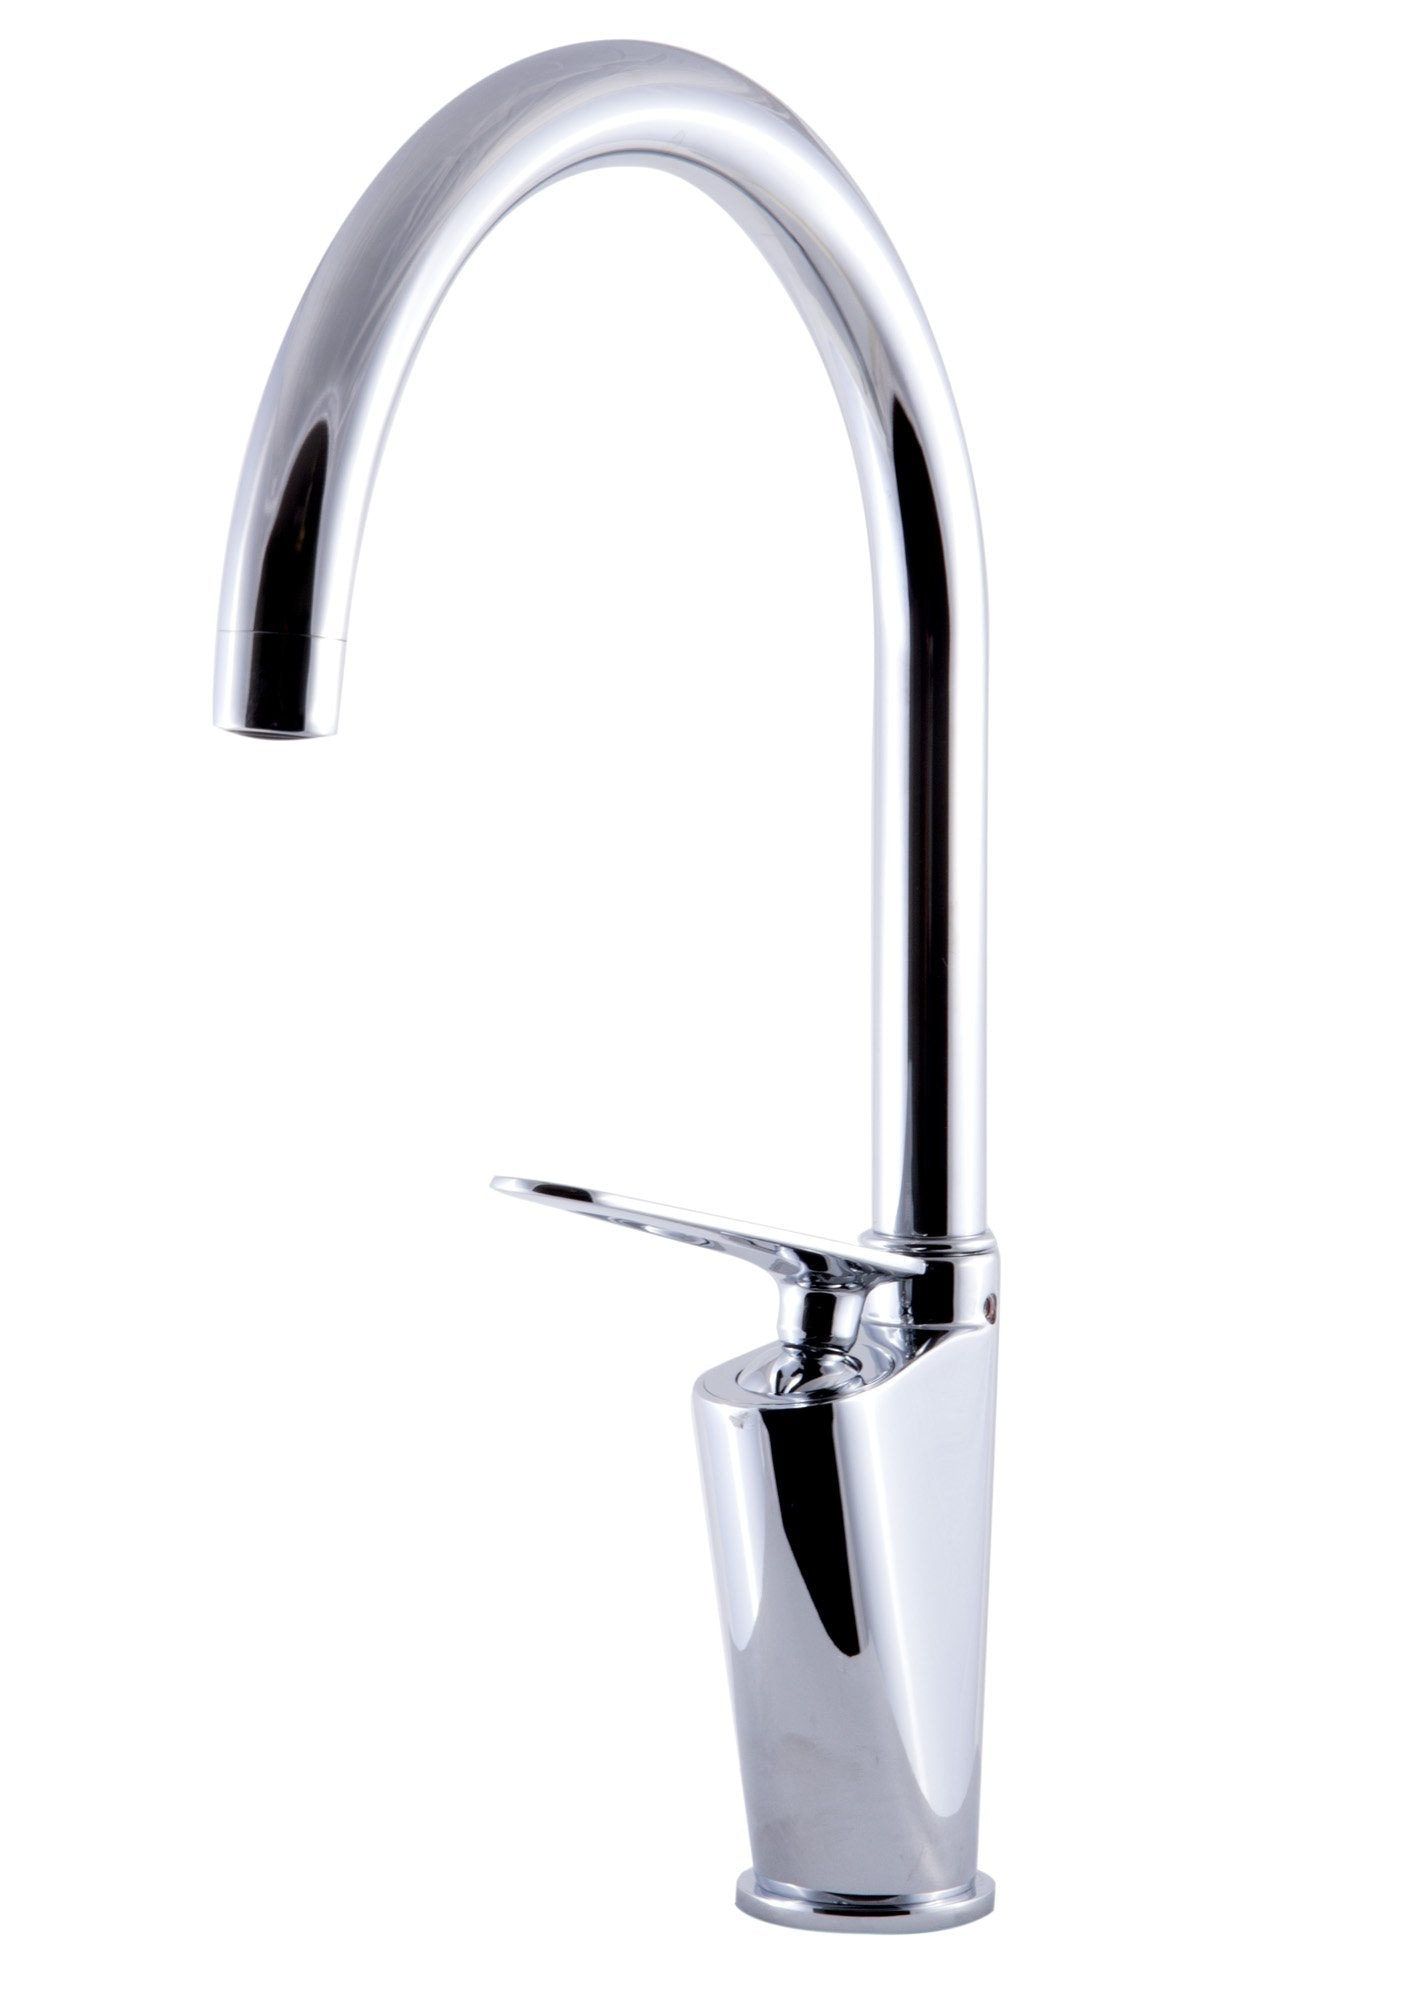 ALFI brand AB3600 Gooseneck Single Hole Bathroom Faucet